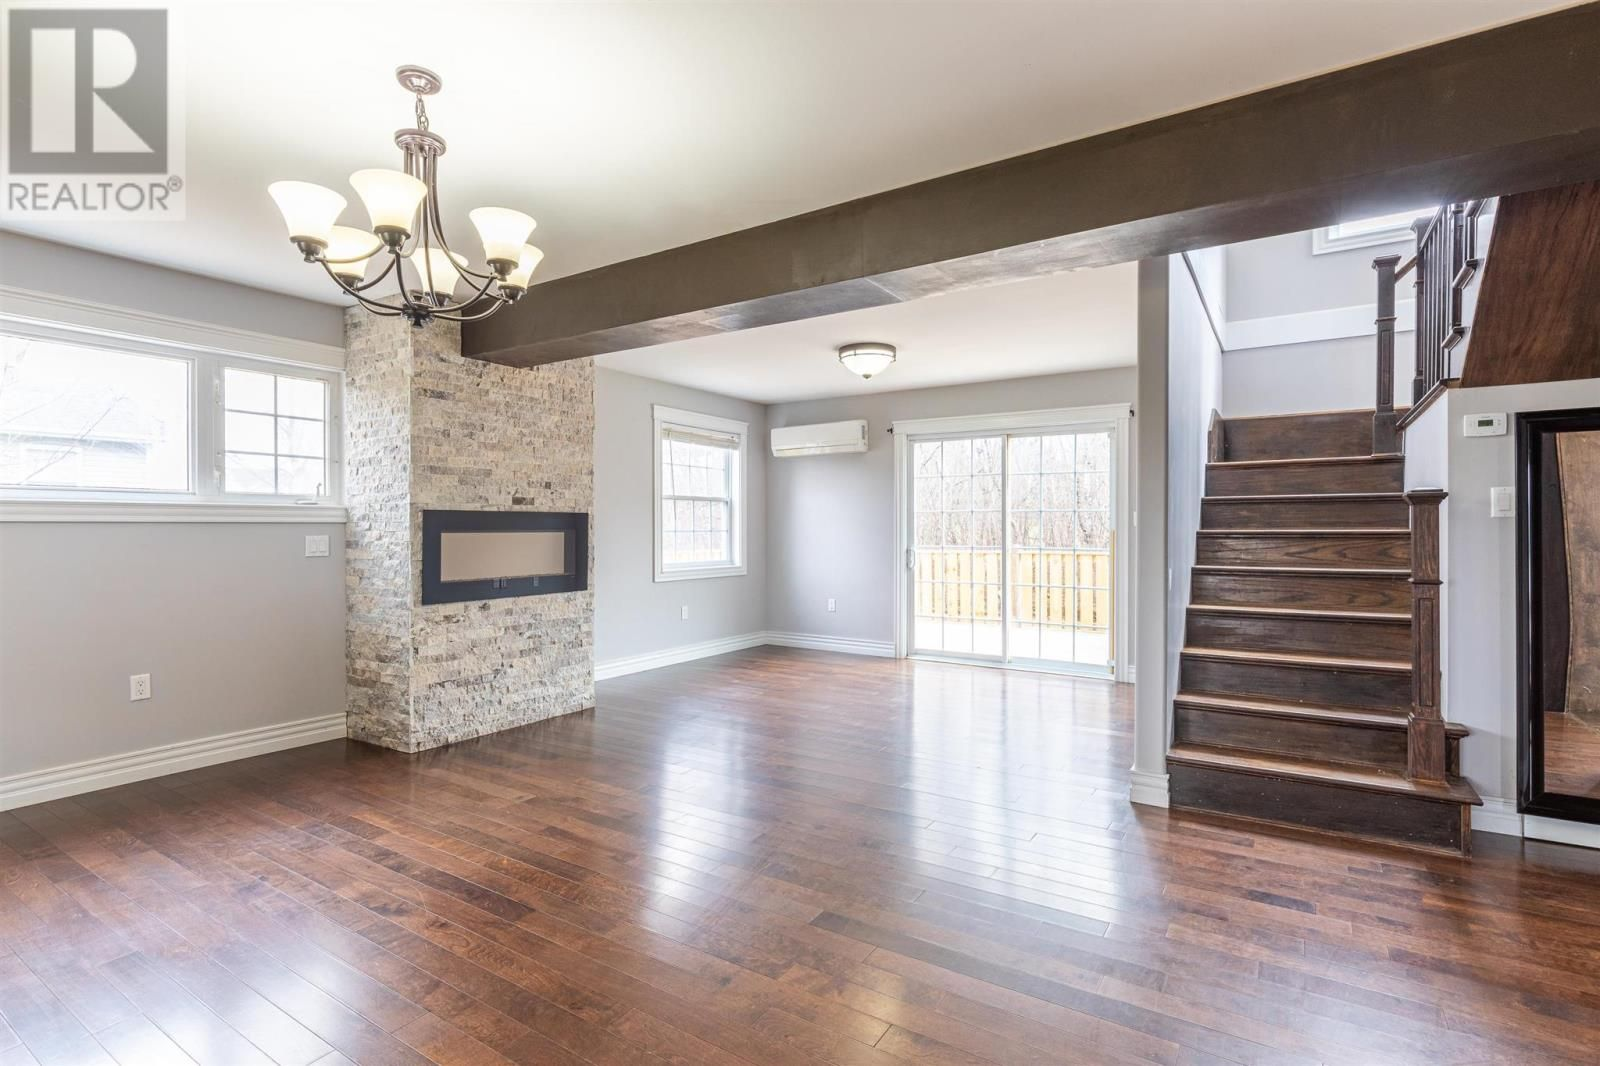 Photo 11: Photos: 5 Cherry Lane in Stratford: House for sale : MLS®# 202119303